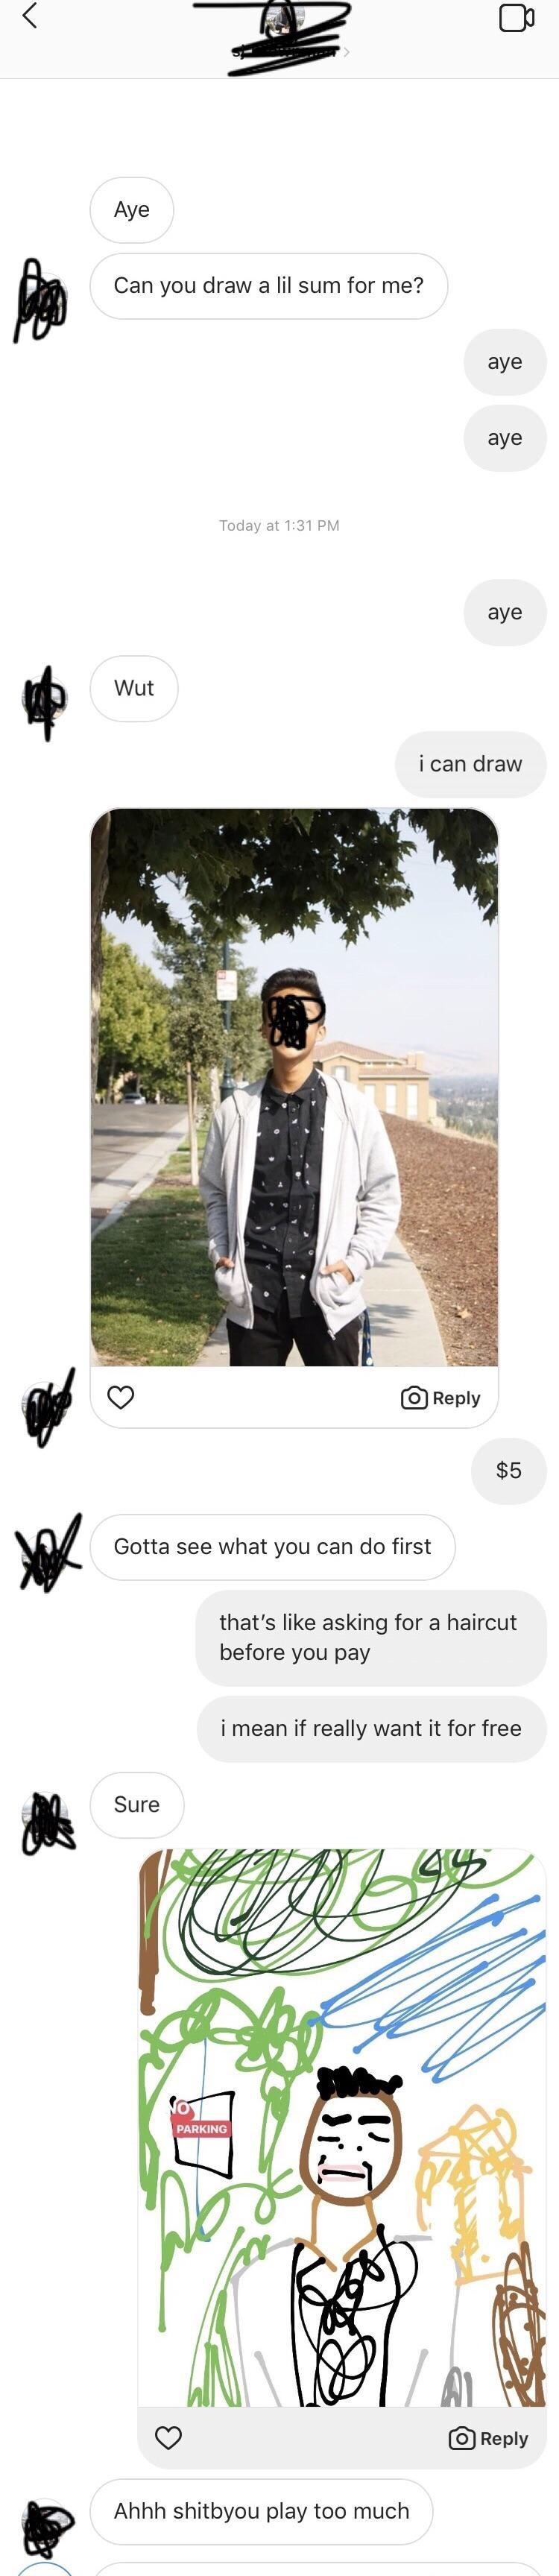 choosing beggar - White - Аye Can you draw a lil sum for me? аye aye Today at 1:31 PM aye Wut i can draw O Reply $5 Gotta see what you can do first that's like asking for a haircut before you pay i mean if really want it for free Sure PARKING O Reply Ahhh shitbyou play too much